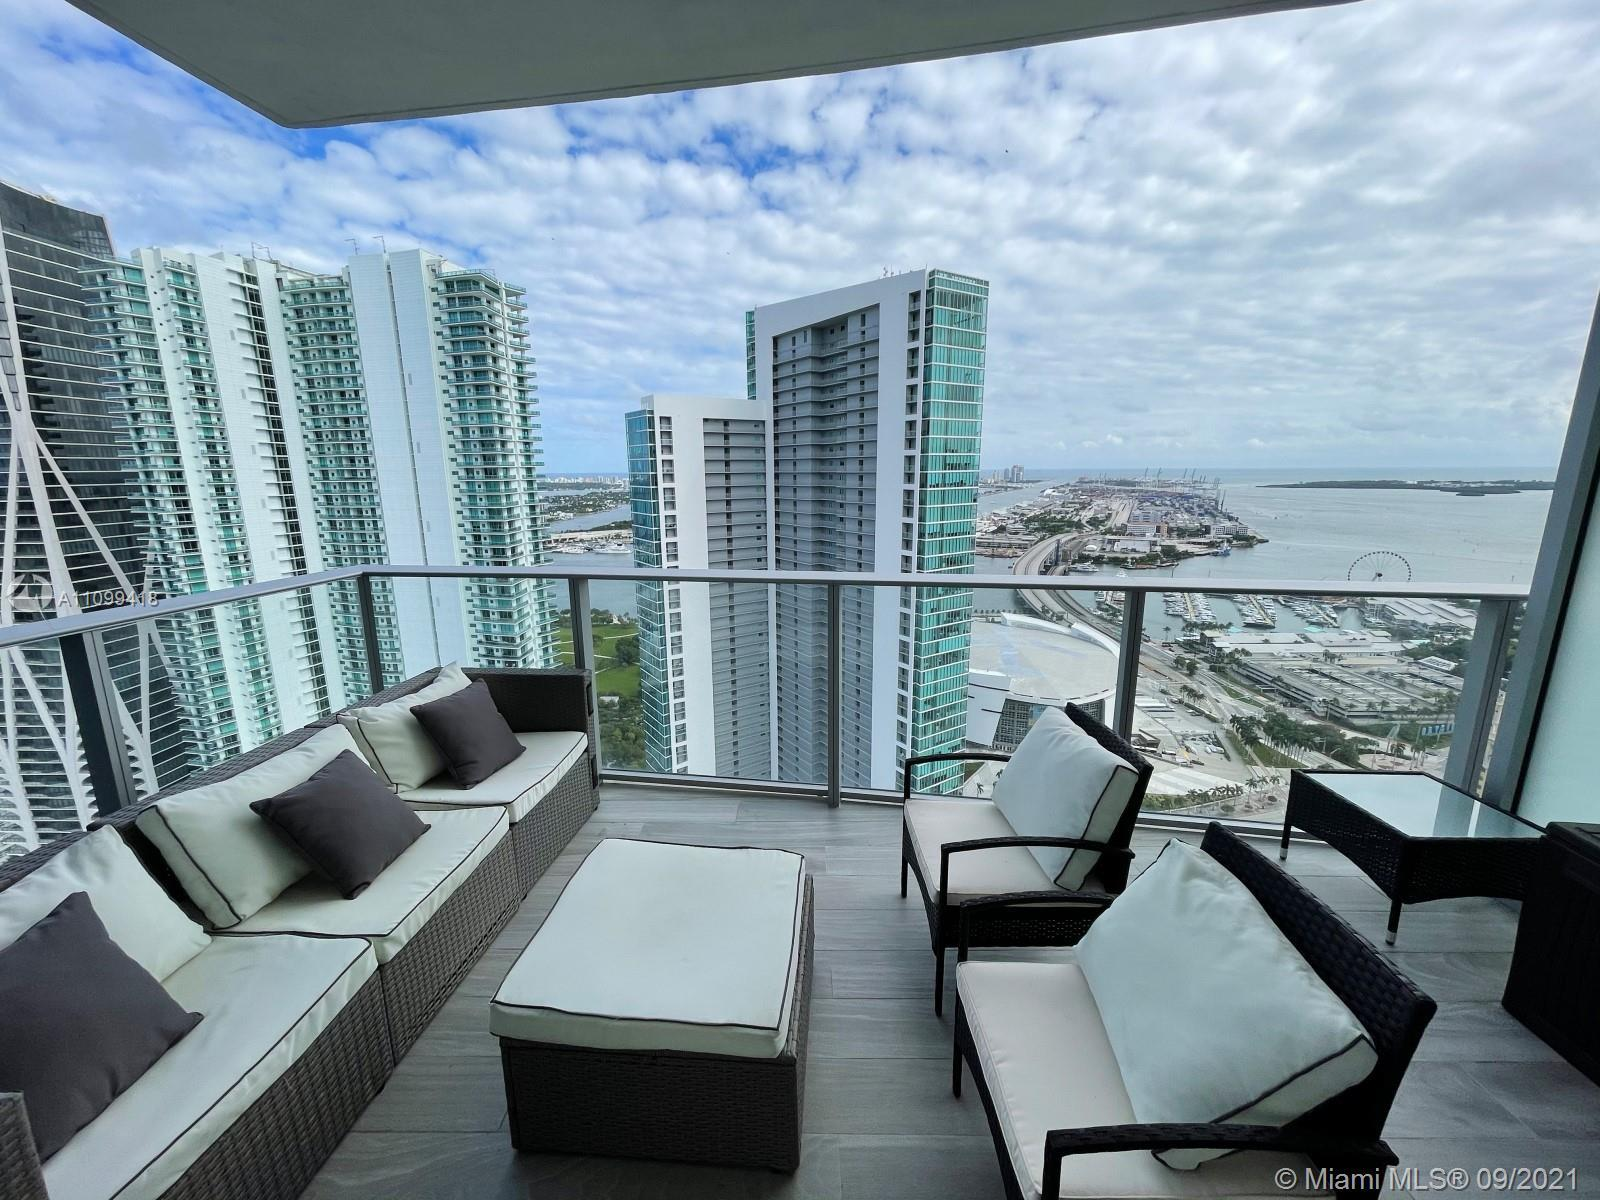 Spectacular 1,690 SQFT 2 Beds + Den + 3 Full Baths with water views residence! Subzero refrigerator.